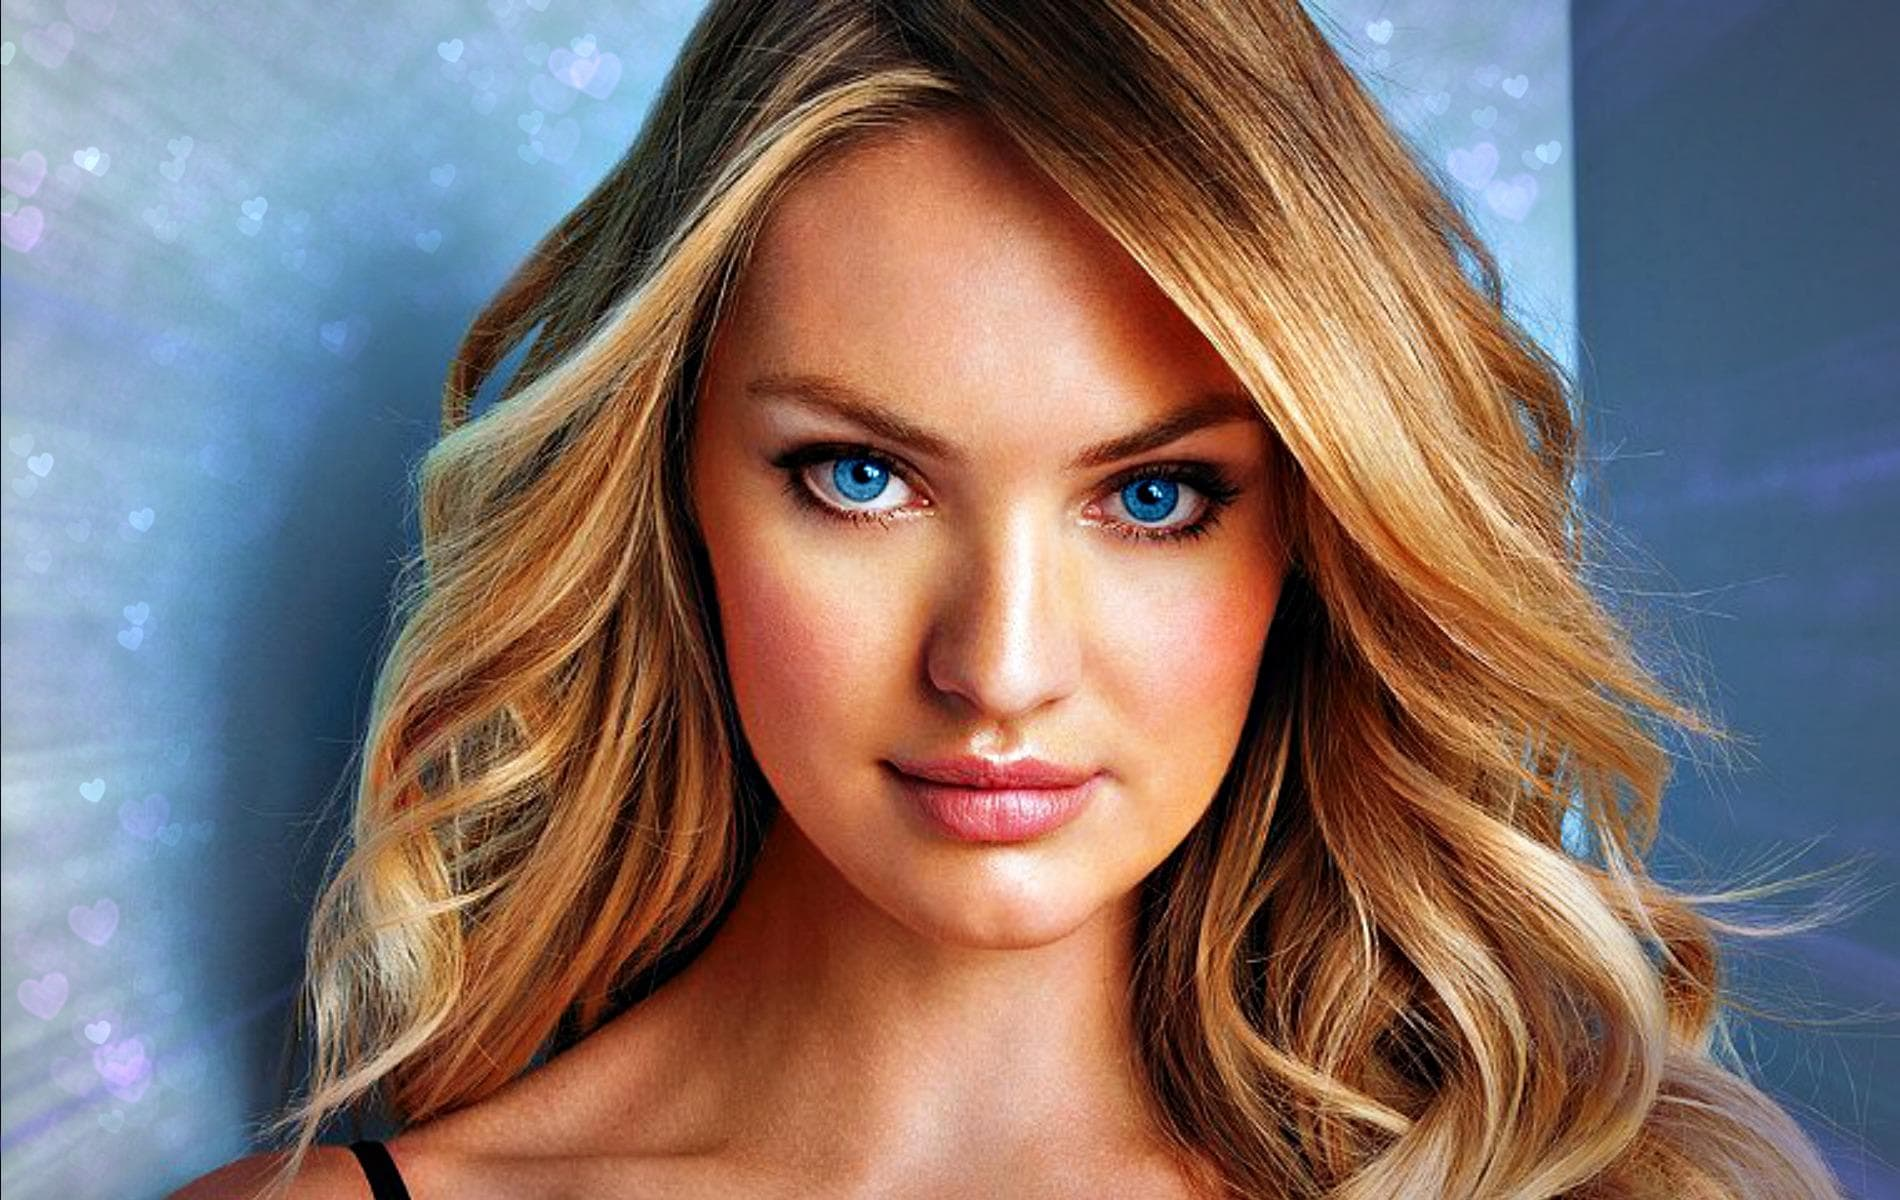 Candice Swanepoel Full hd wallpapers